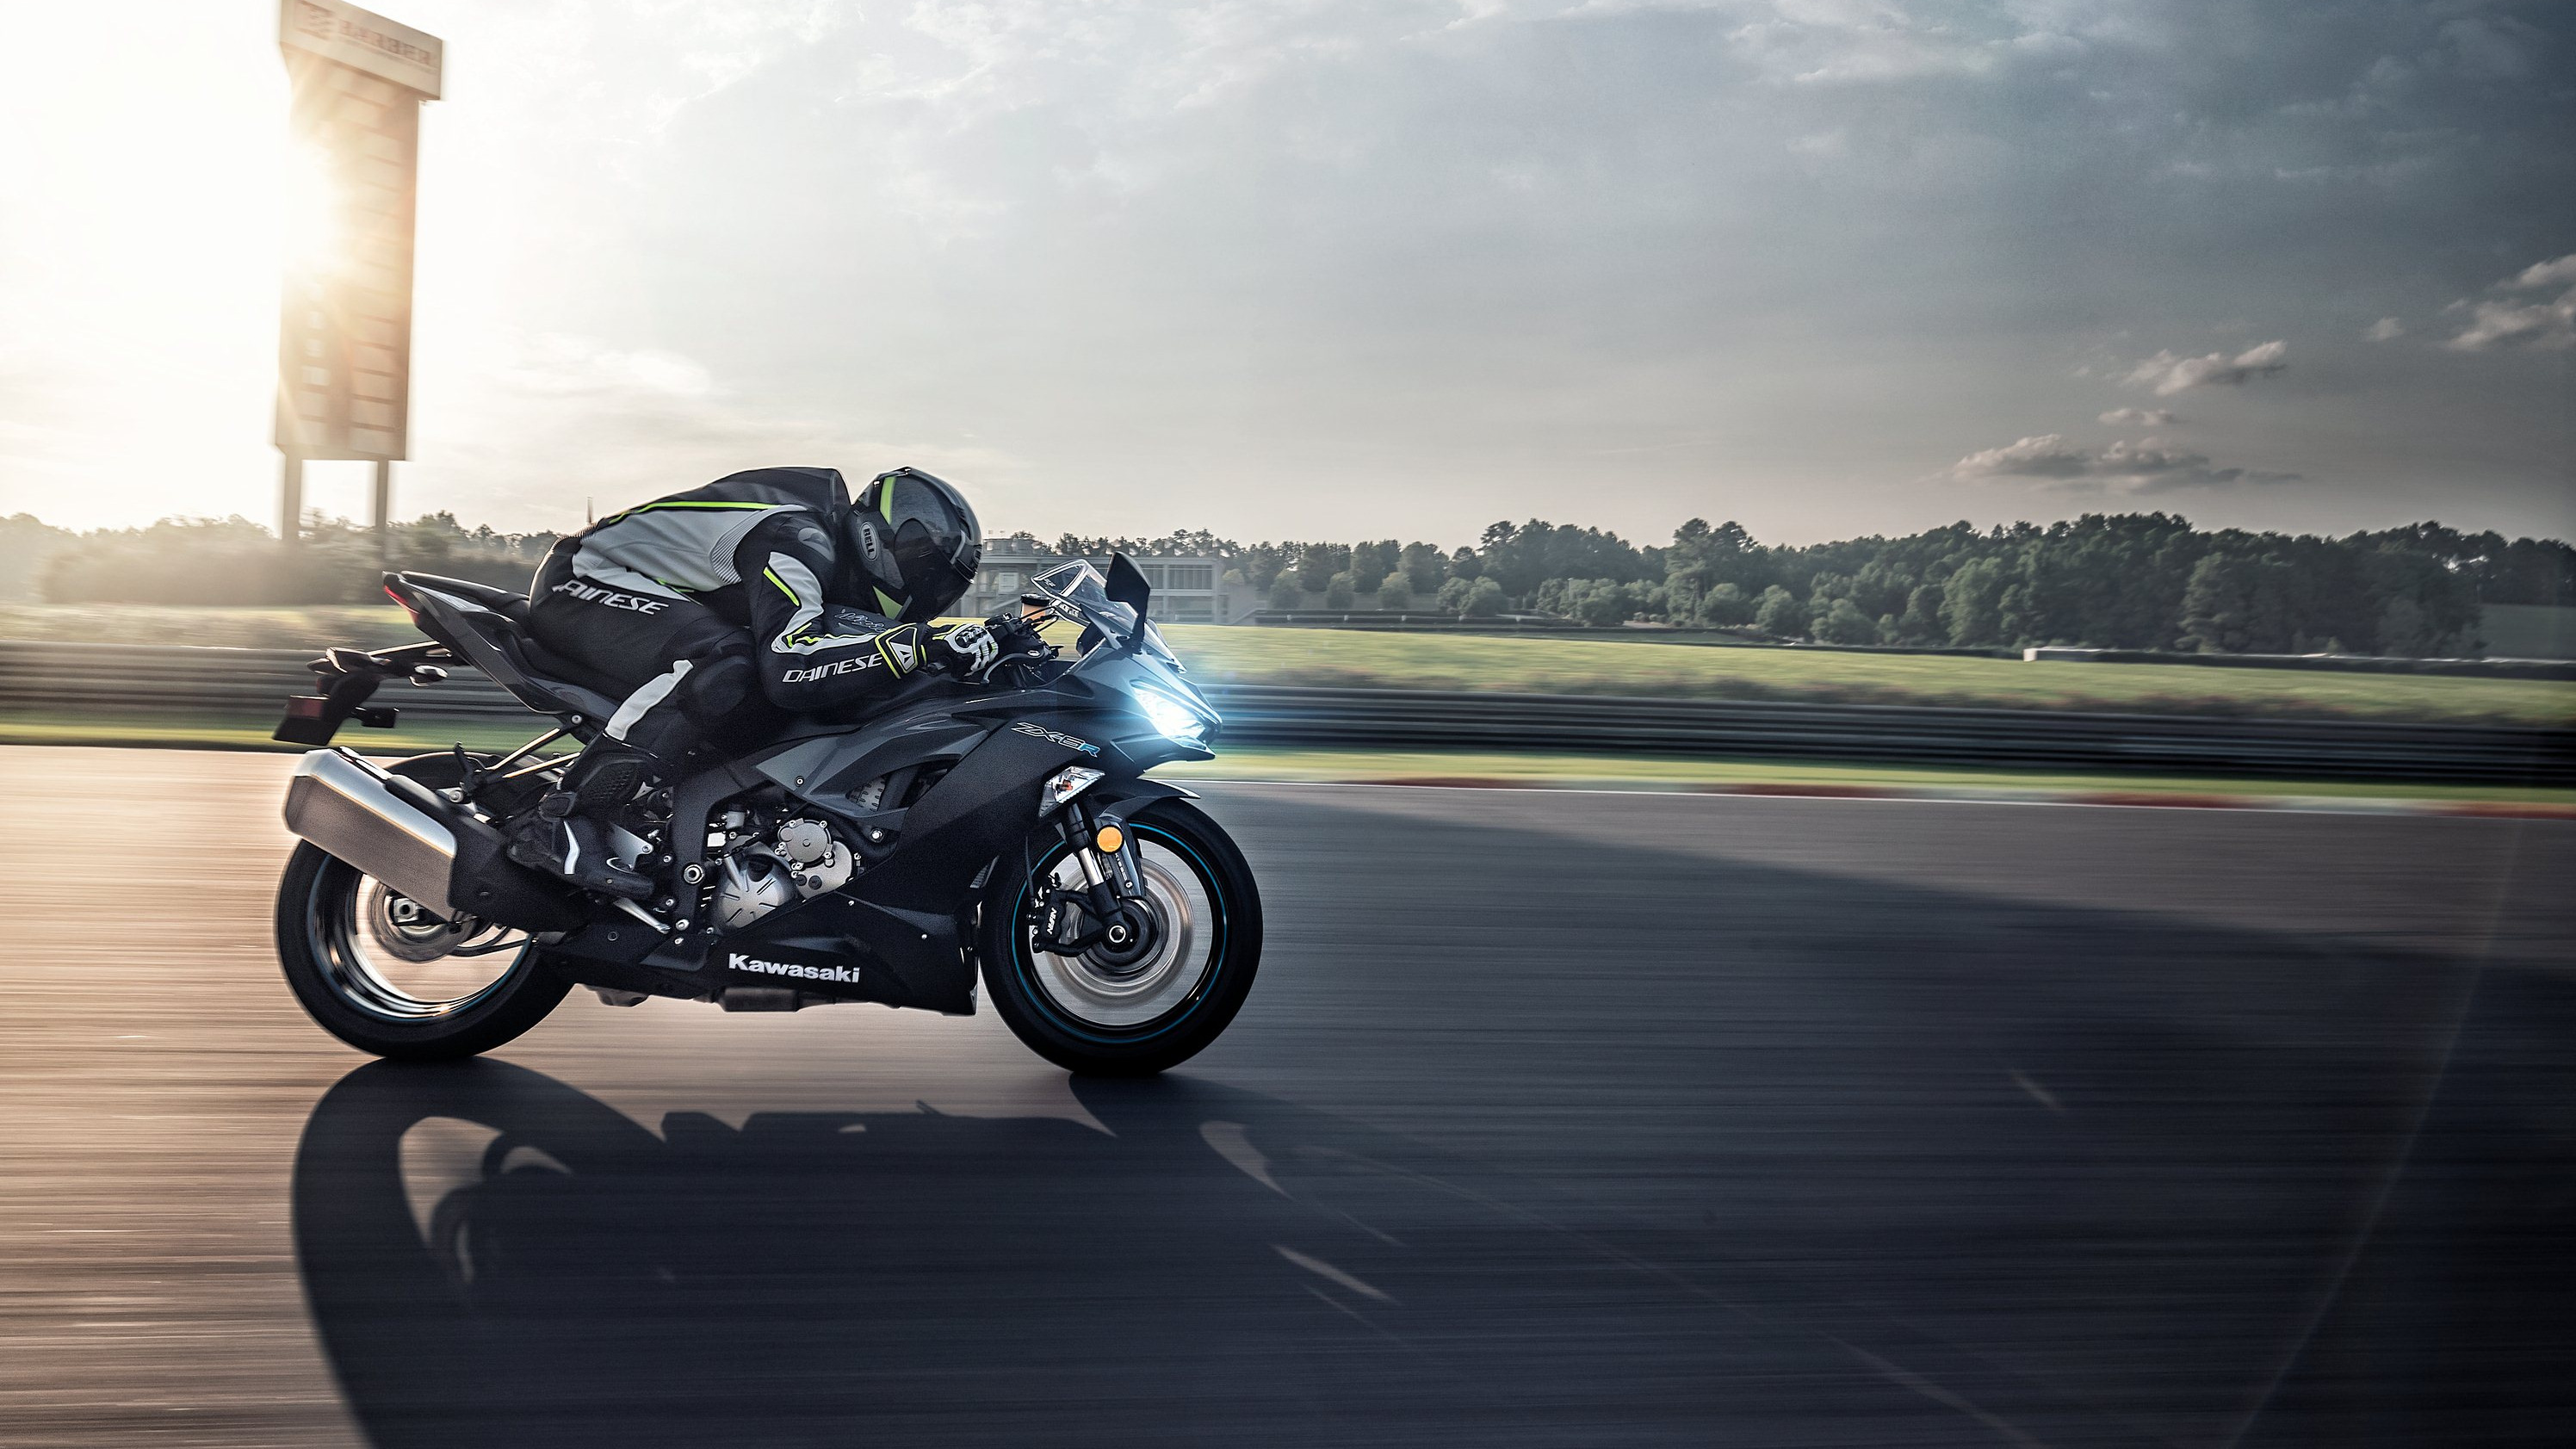 2019 Kawasaki Ninja Zx 6r Top Speed